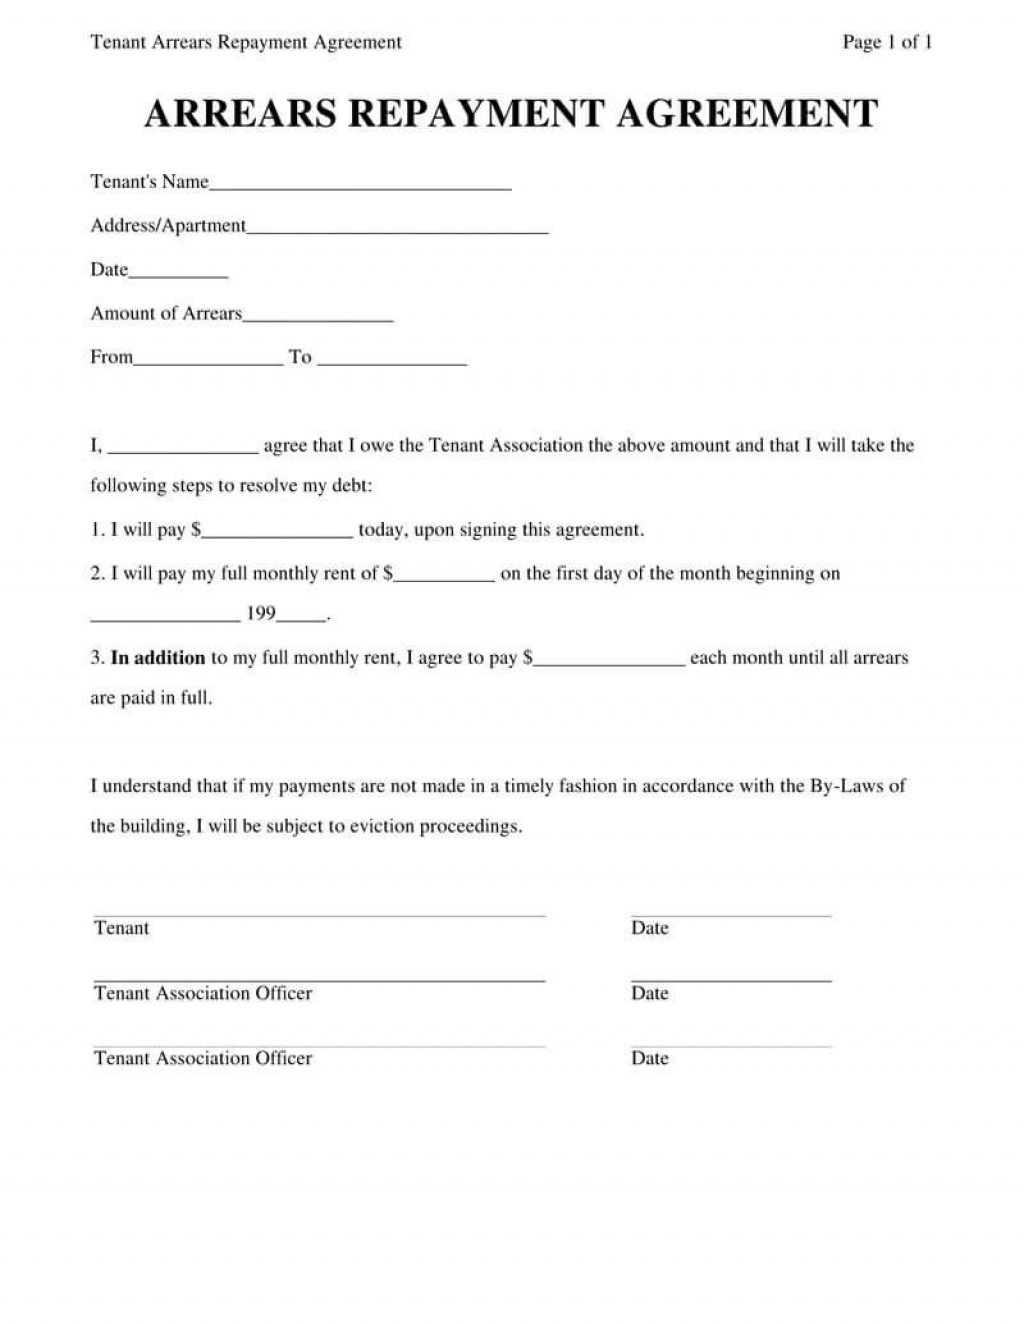 009 Fascinating Personal Loan Agreement Template Highest Clarity  Contract Free Word Format South AfricaLarge